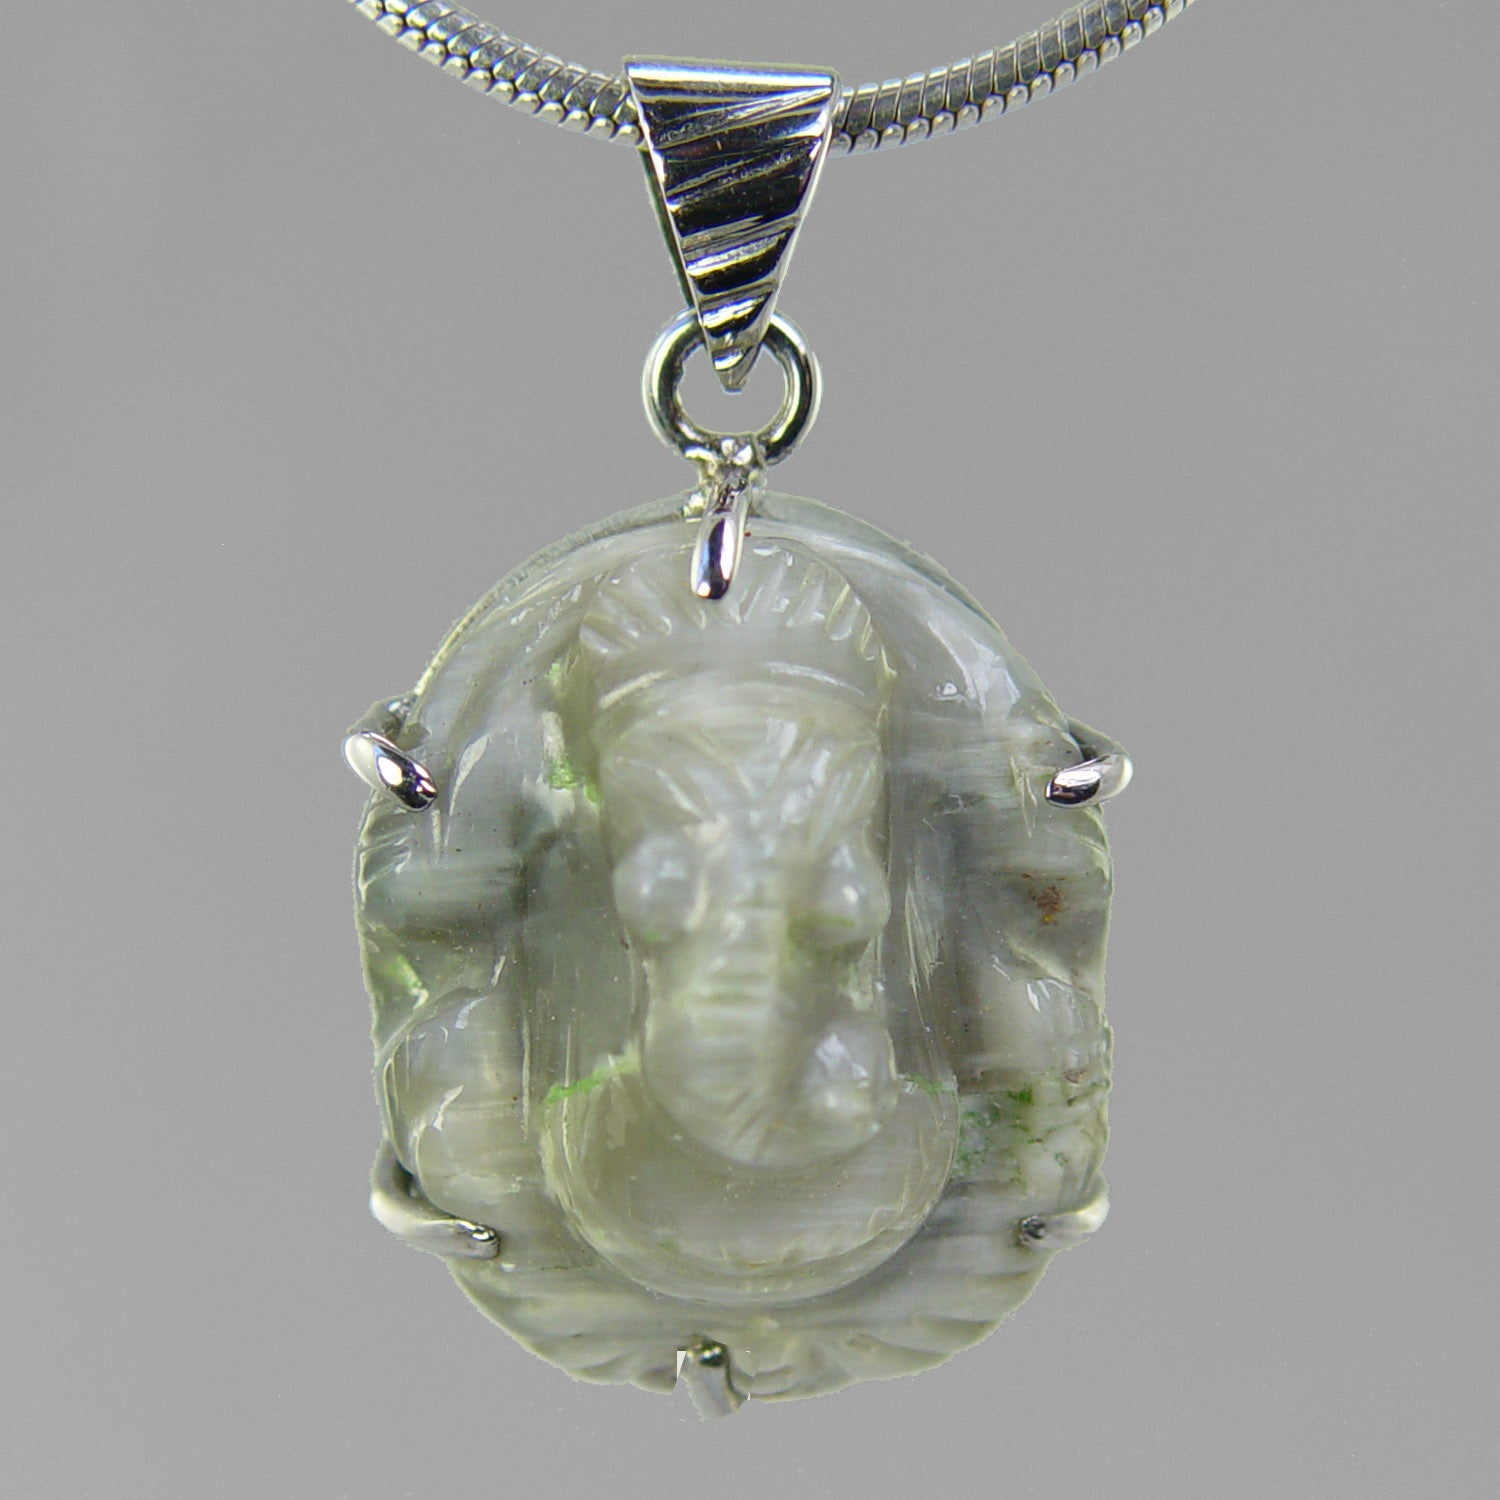 Chrysoberyl Ganesha set in Sterling Silver Pendant